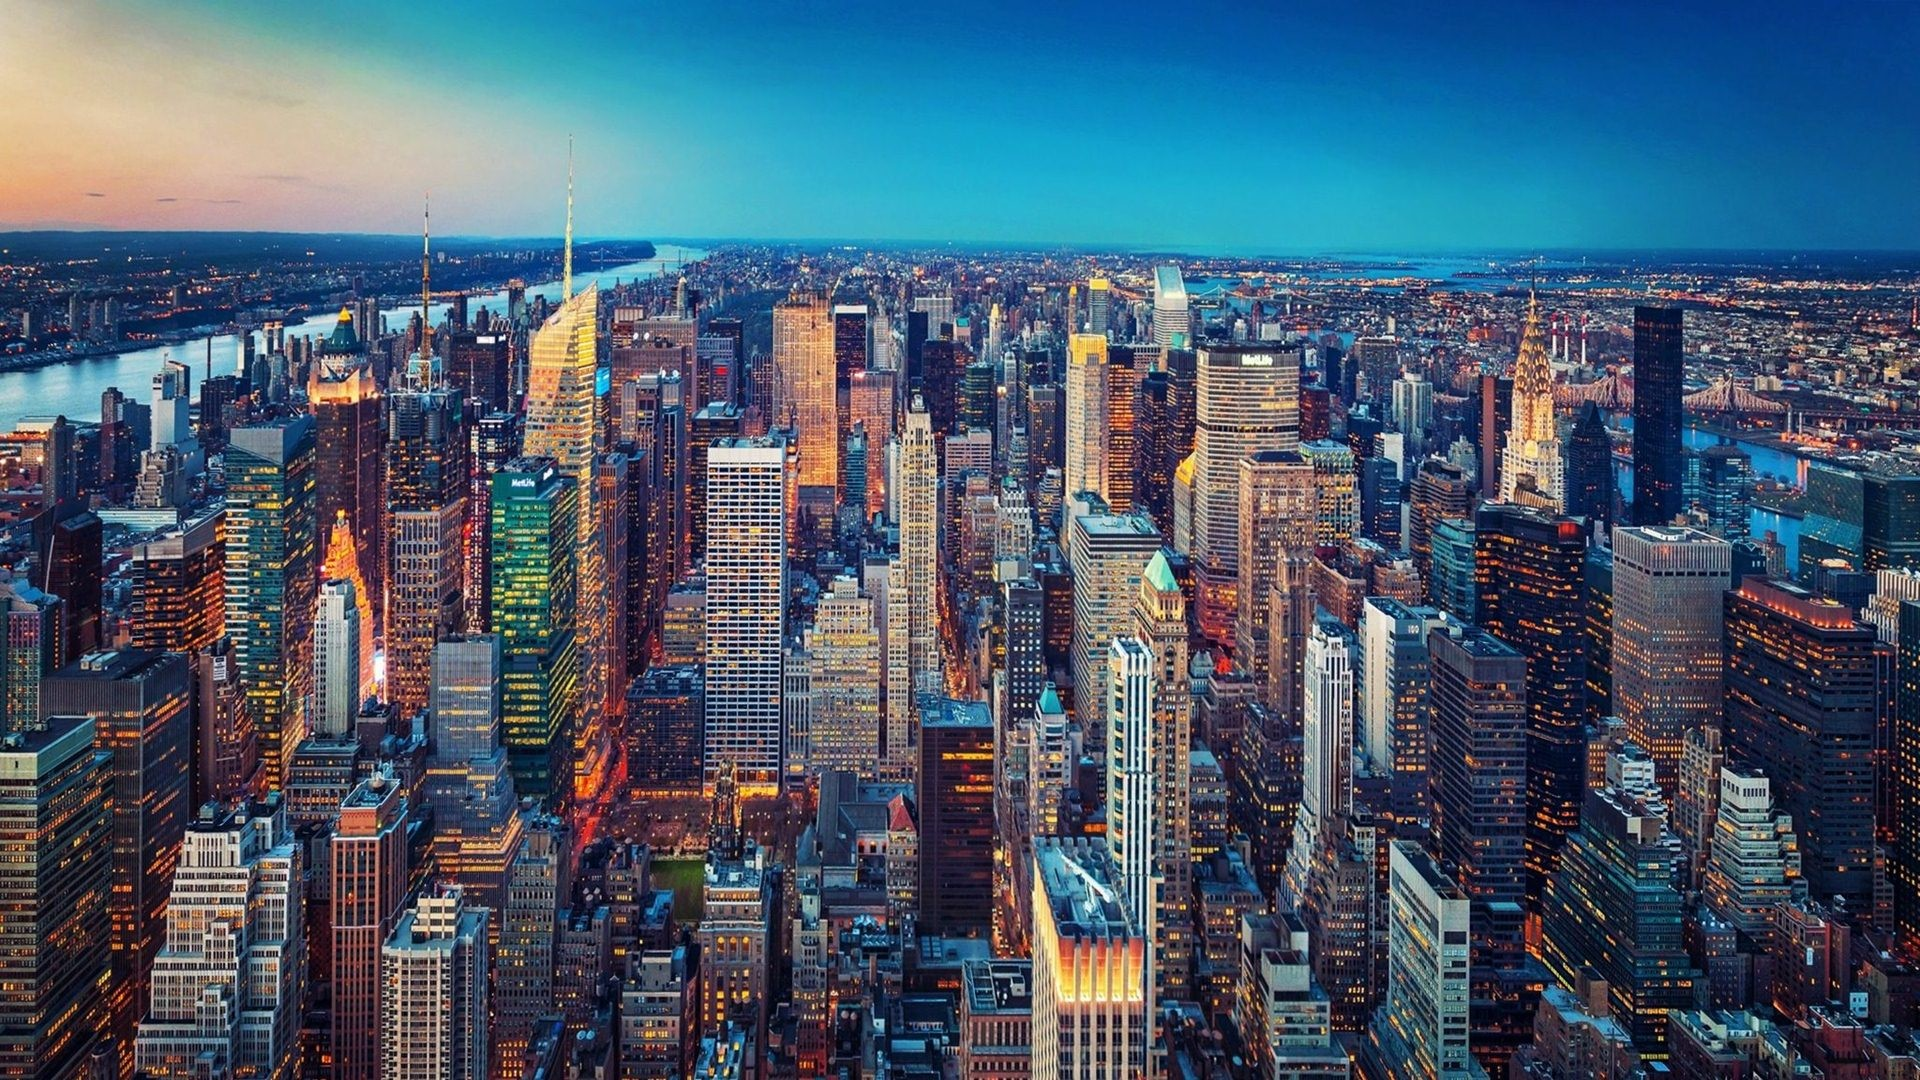 Desktop Wallpapers New York 1920x1080 Download Hd Wallpaper Wallpapertip